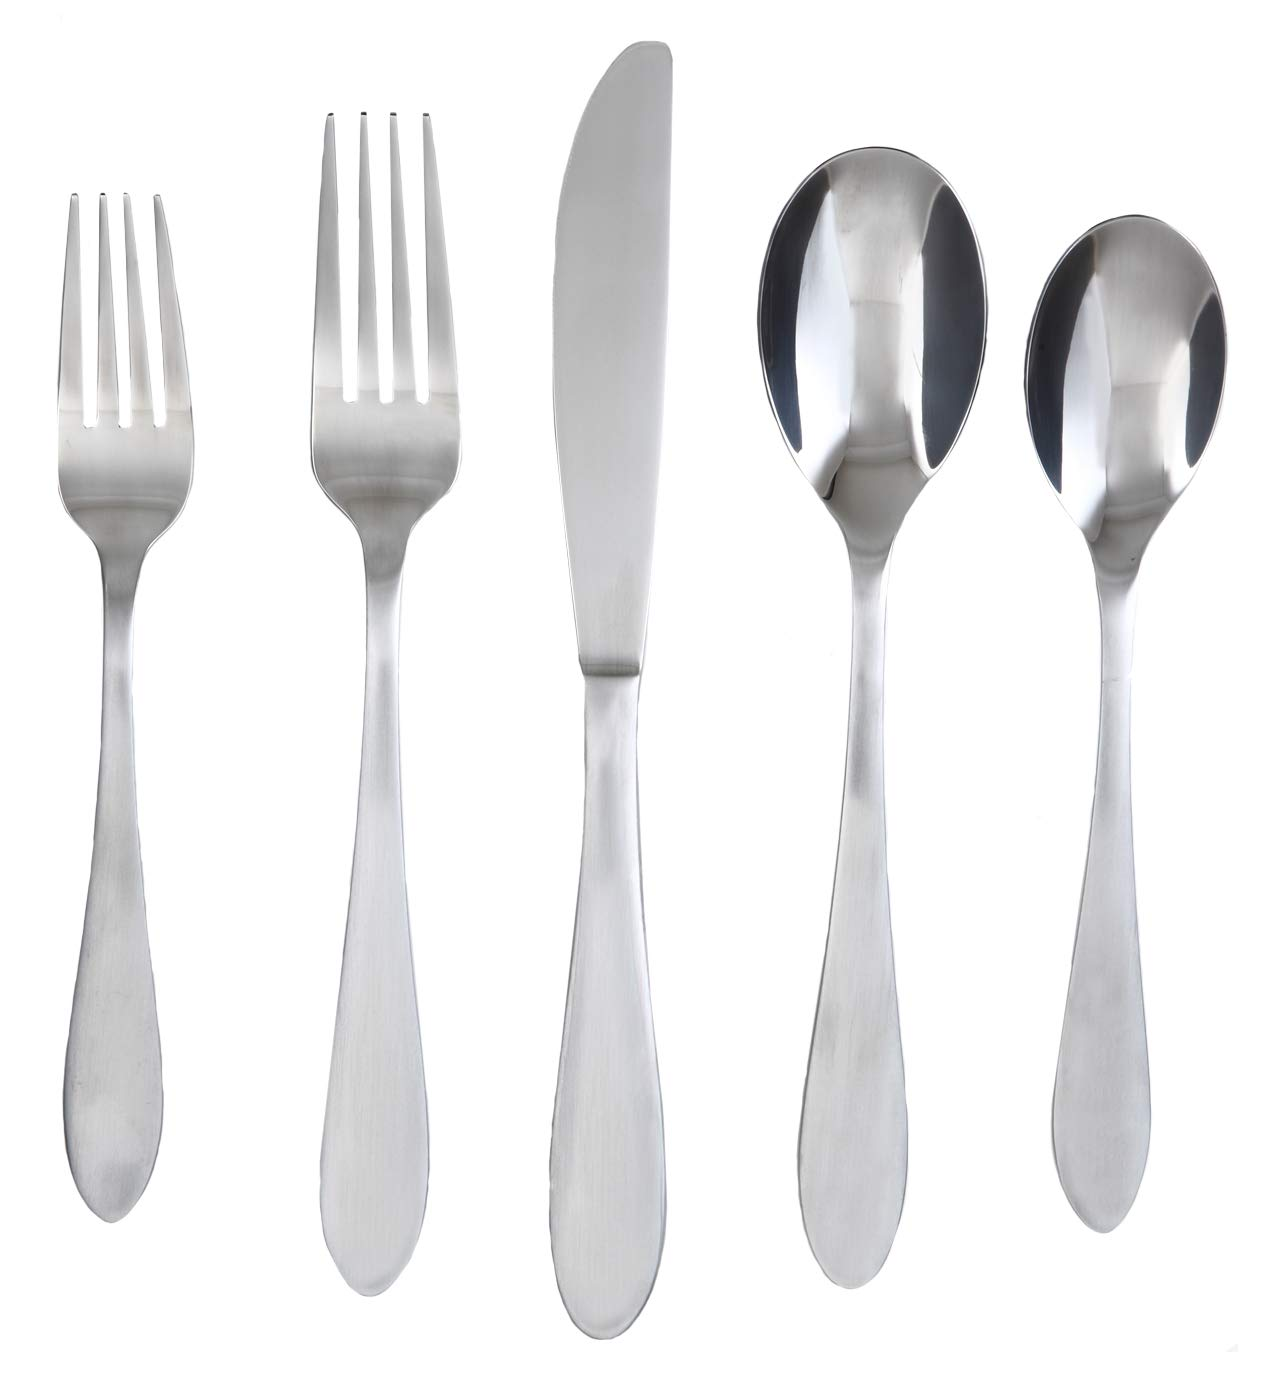 Cambridge Silversmiths Apex Satin 20-Piece Flatware Silverware Set, Stainless Steel, Service for 4, Includes Forks/Spoons/Knives by Cambridge Silversmiths